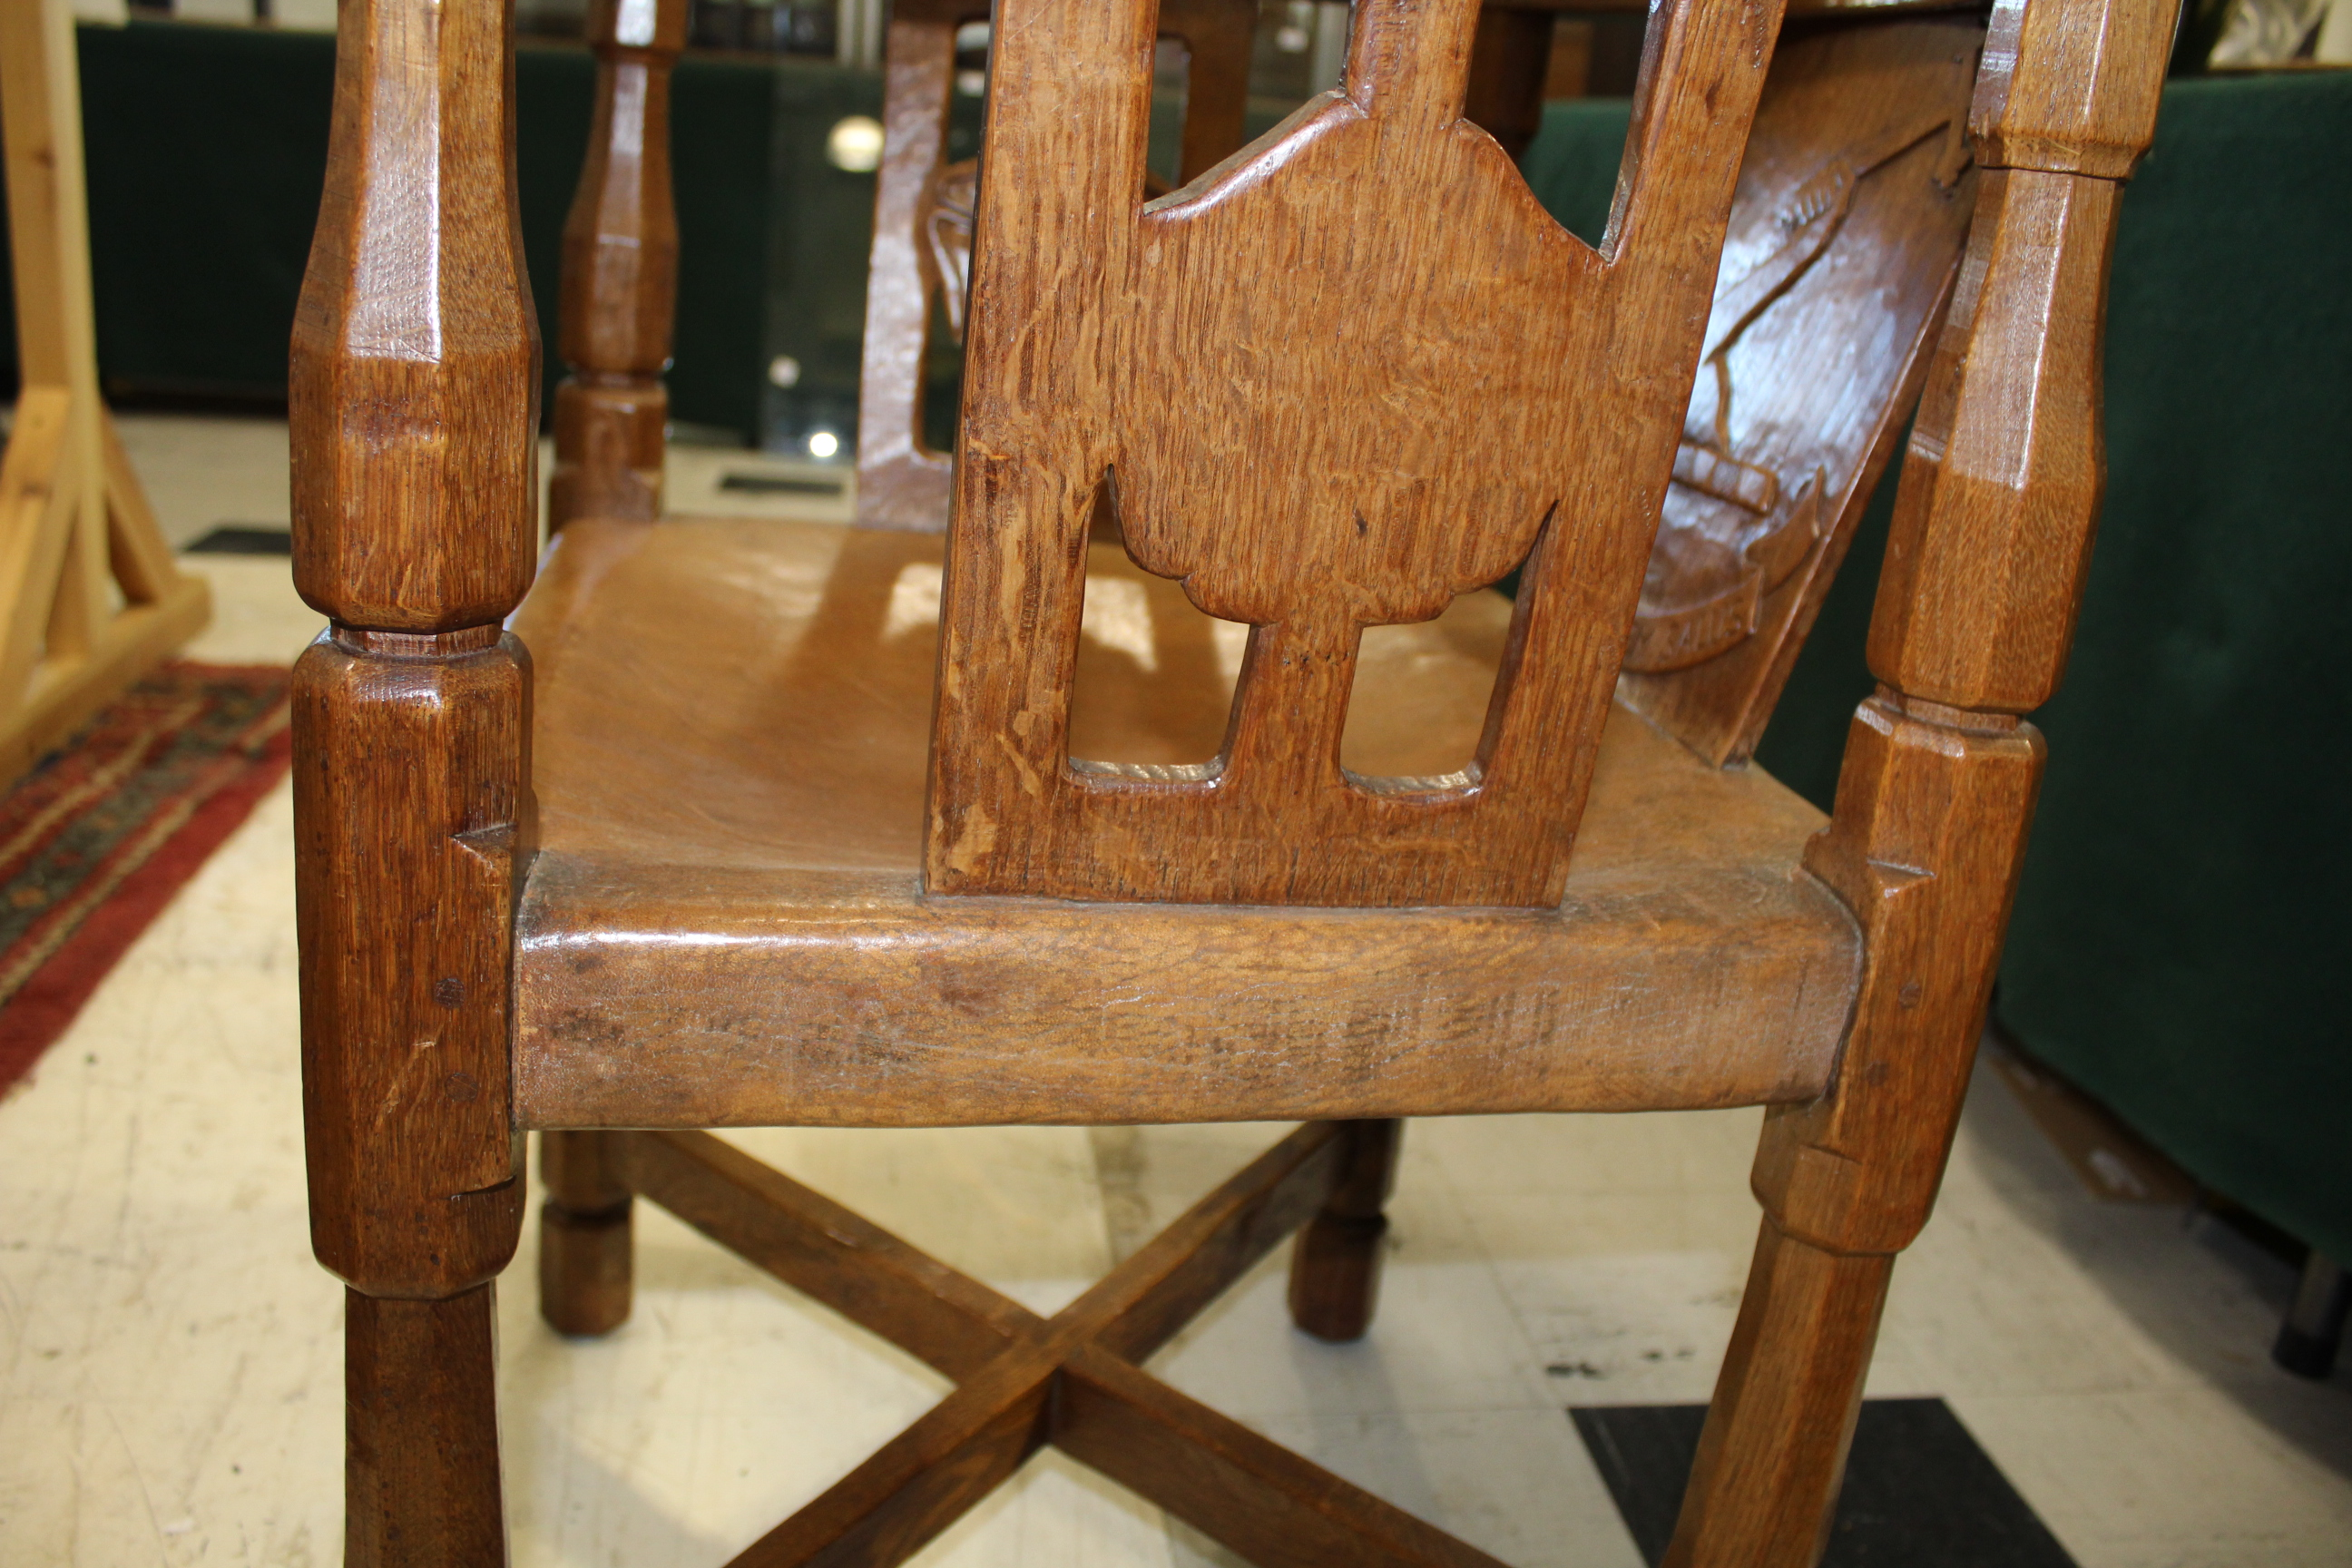 ROBERT THOMPSON OF KILBURN - MOUSEMAN MONKS CHAIR a circa 1920s/1930s oak Monk's armchair with a - Image 12 of 27